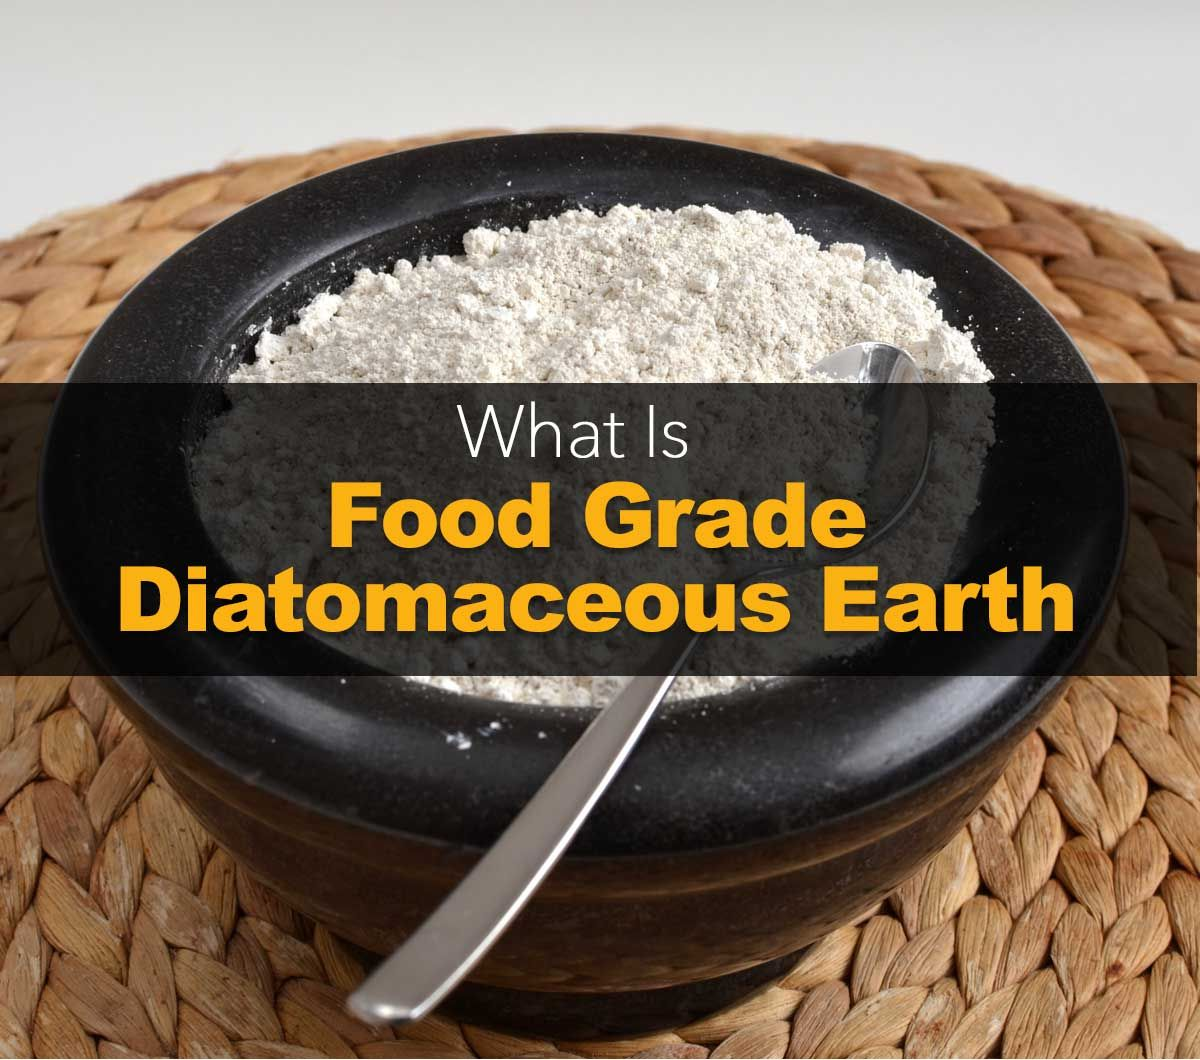 12 Proven Food Grade Diatomaceous Earth Benefits And Uses